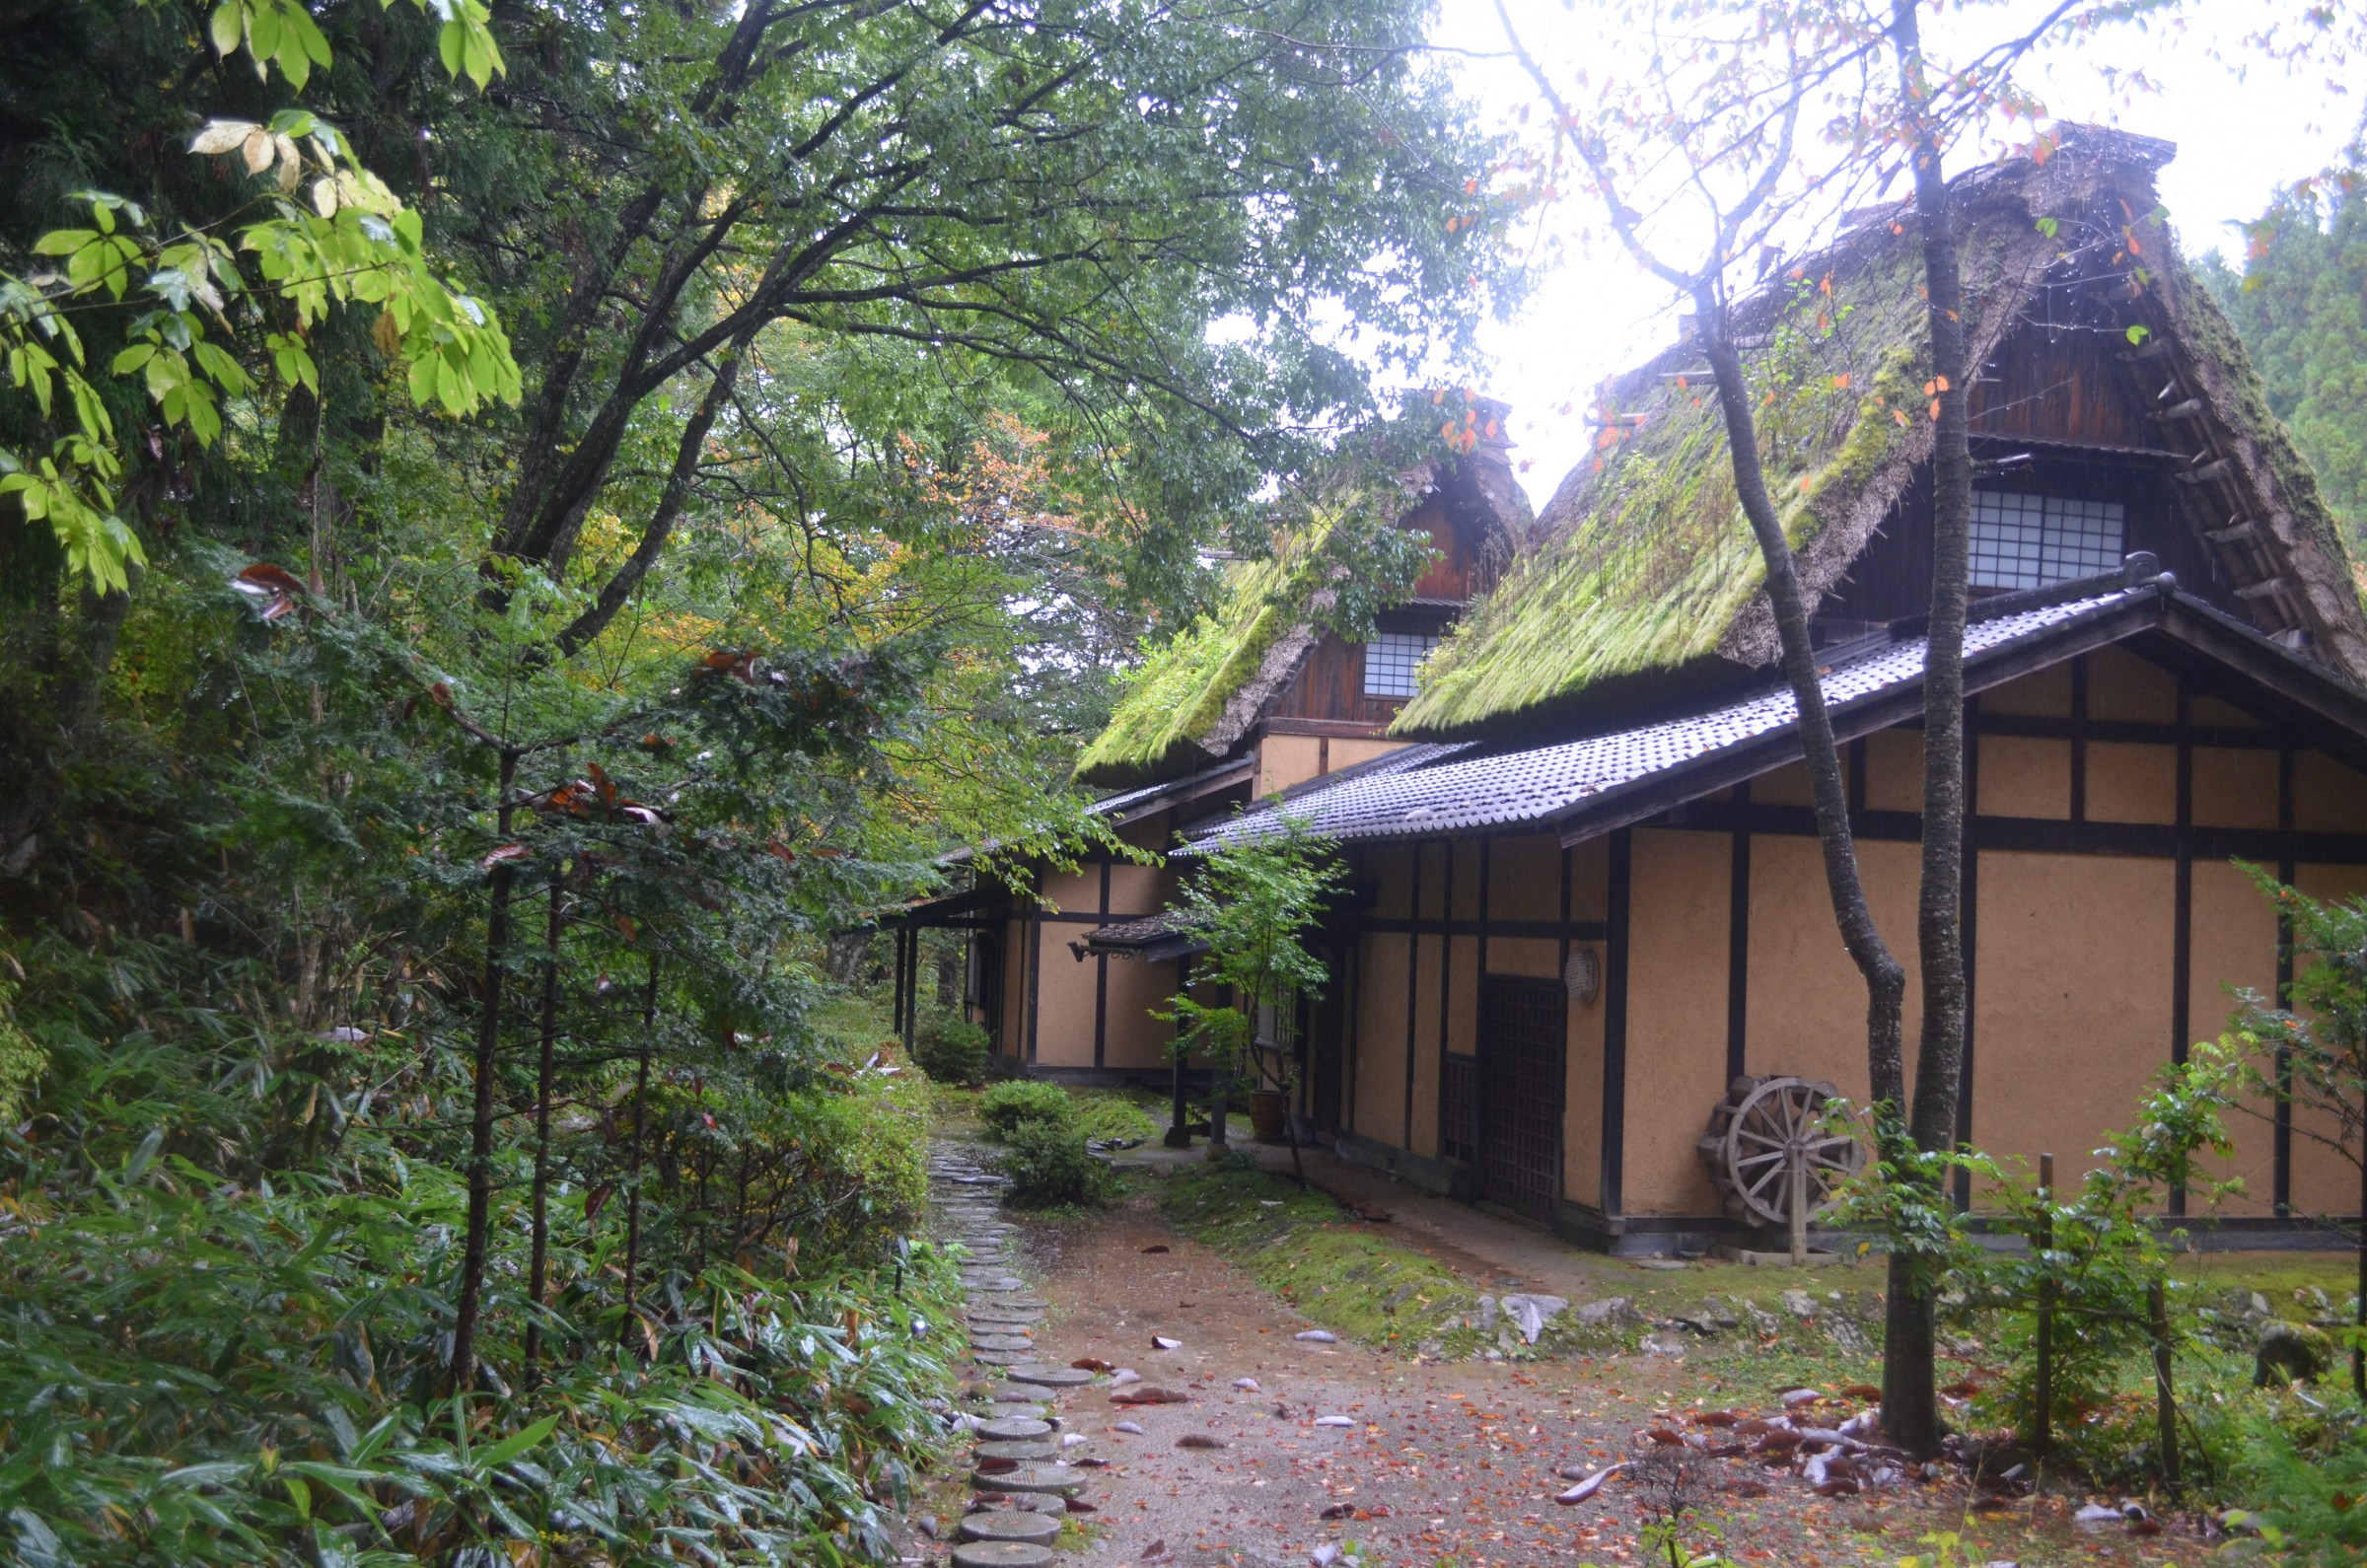 The thatched roof of the Wanosato ryokan